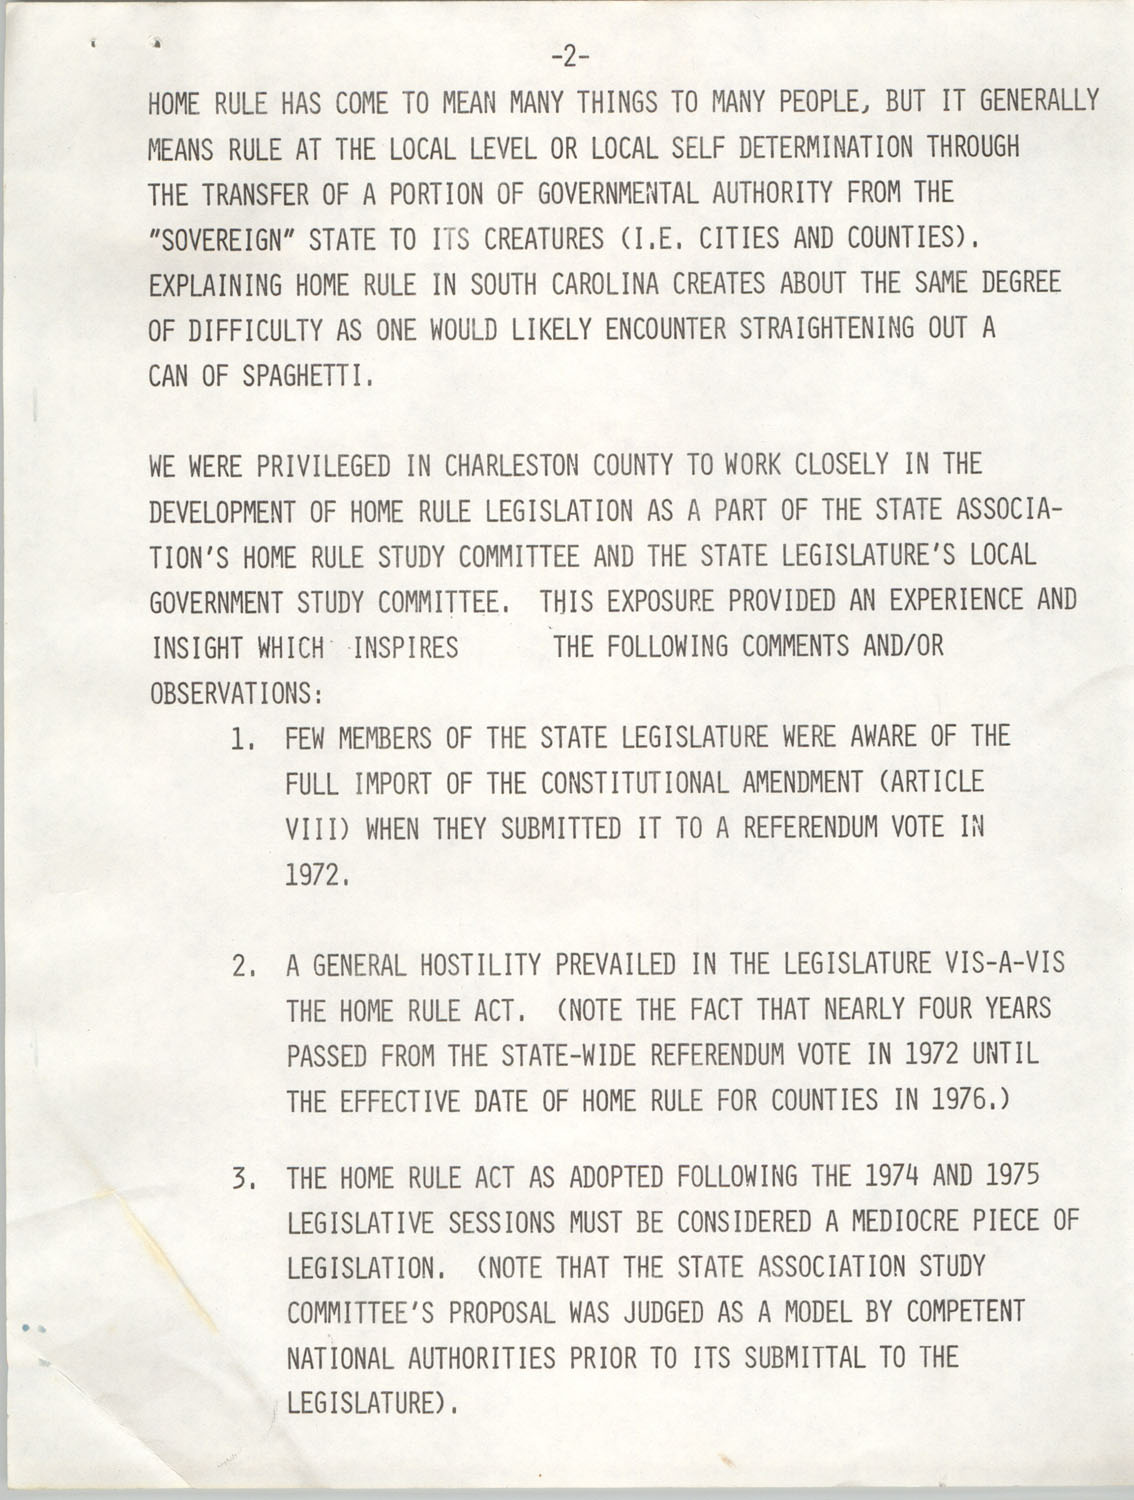 Home Rule In South Carolina, September 28, 1977, Page 2